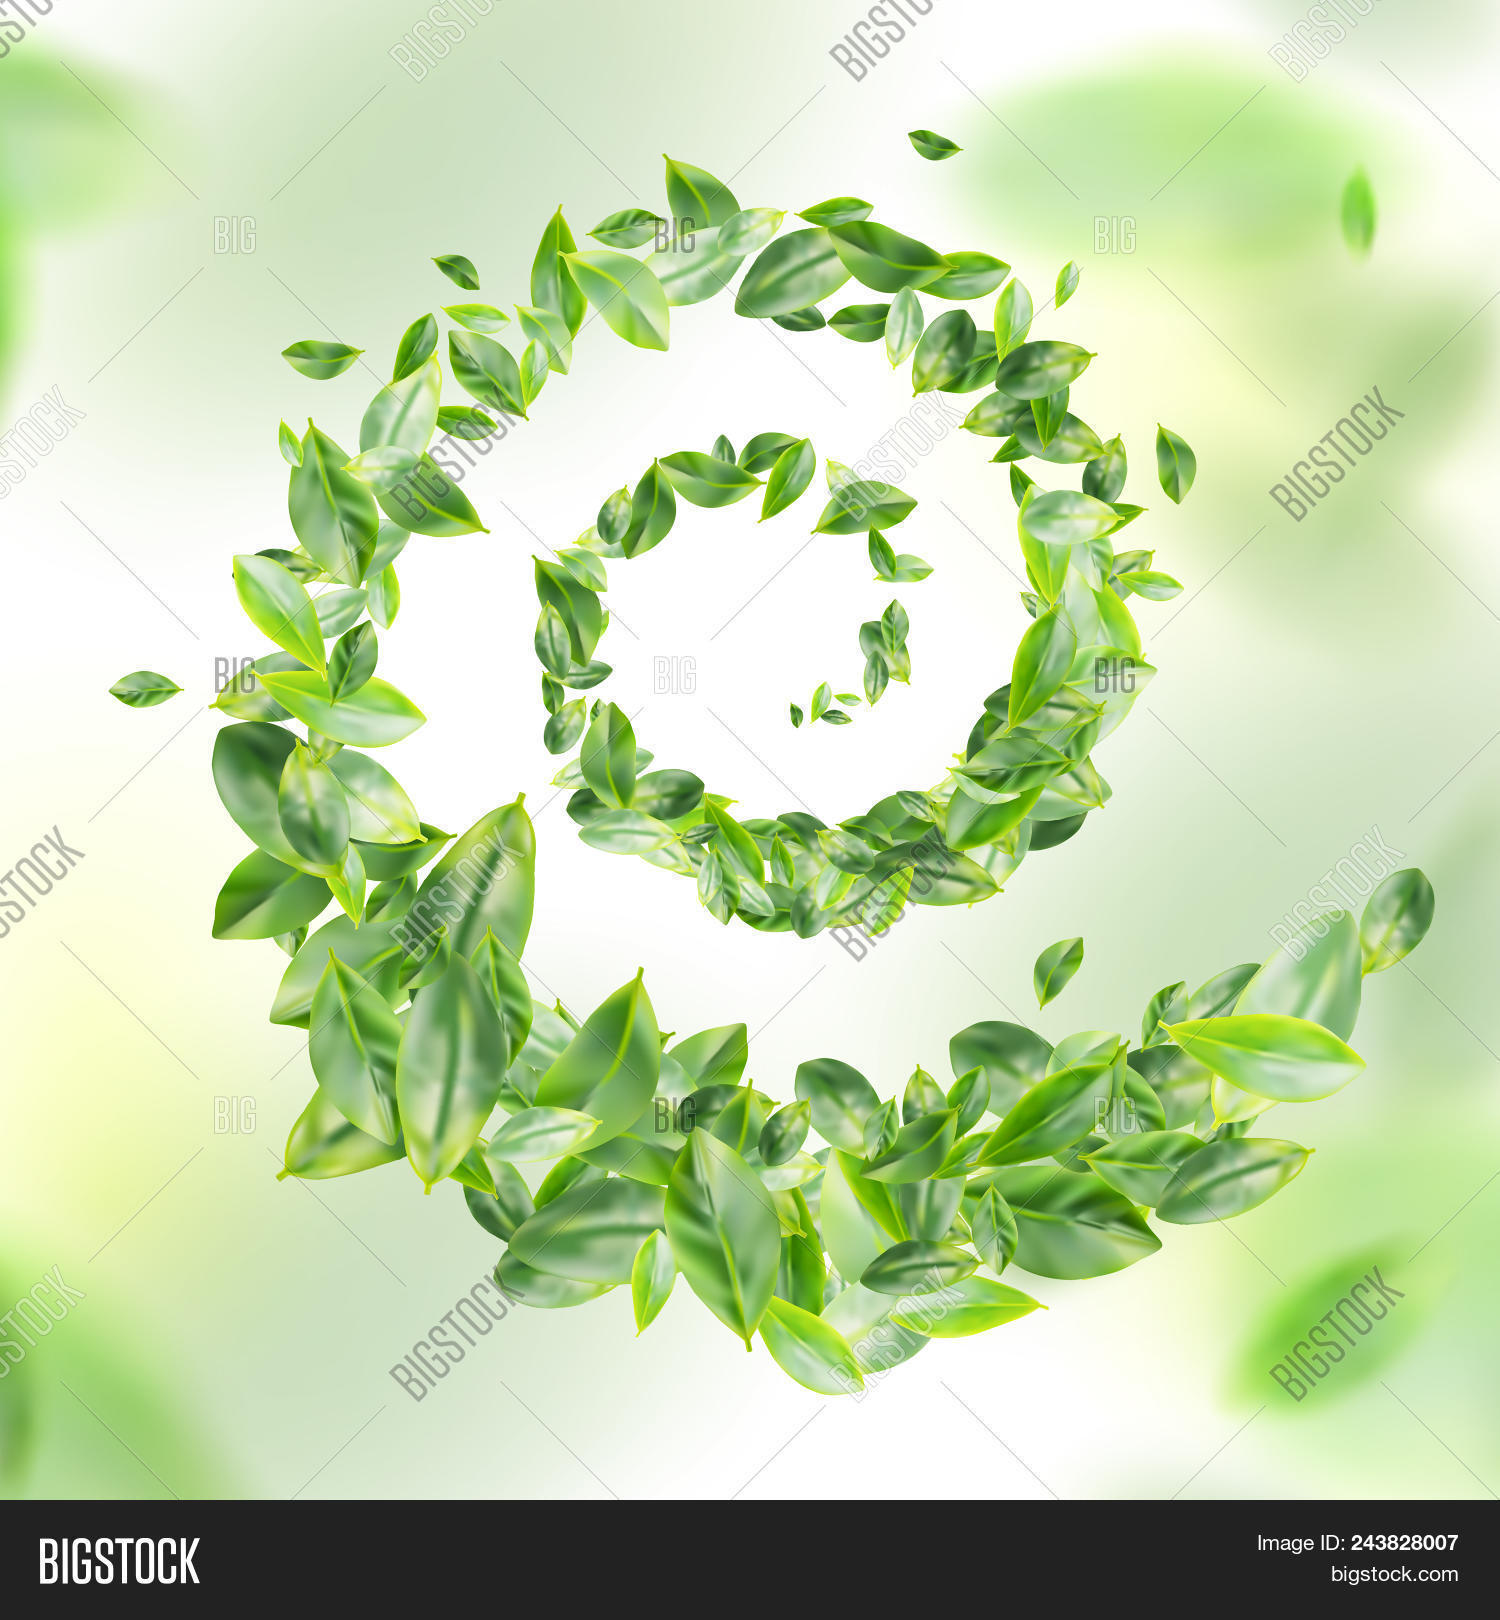 Green Leaf Raster 3d Image & Photo (Free Trial) | Bigstock